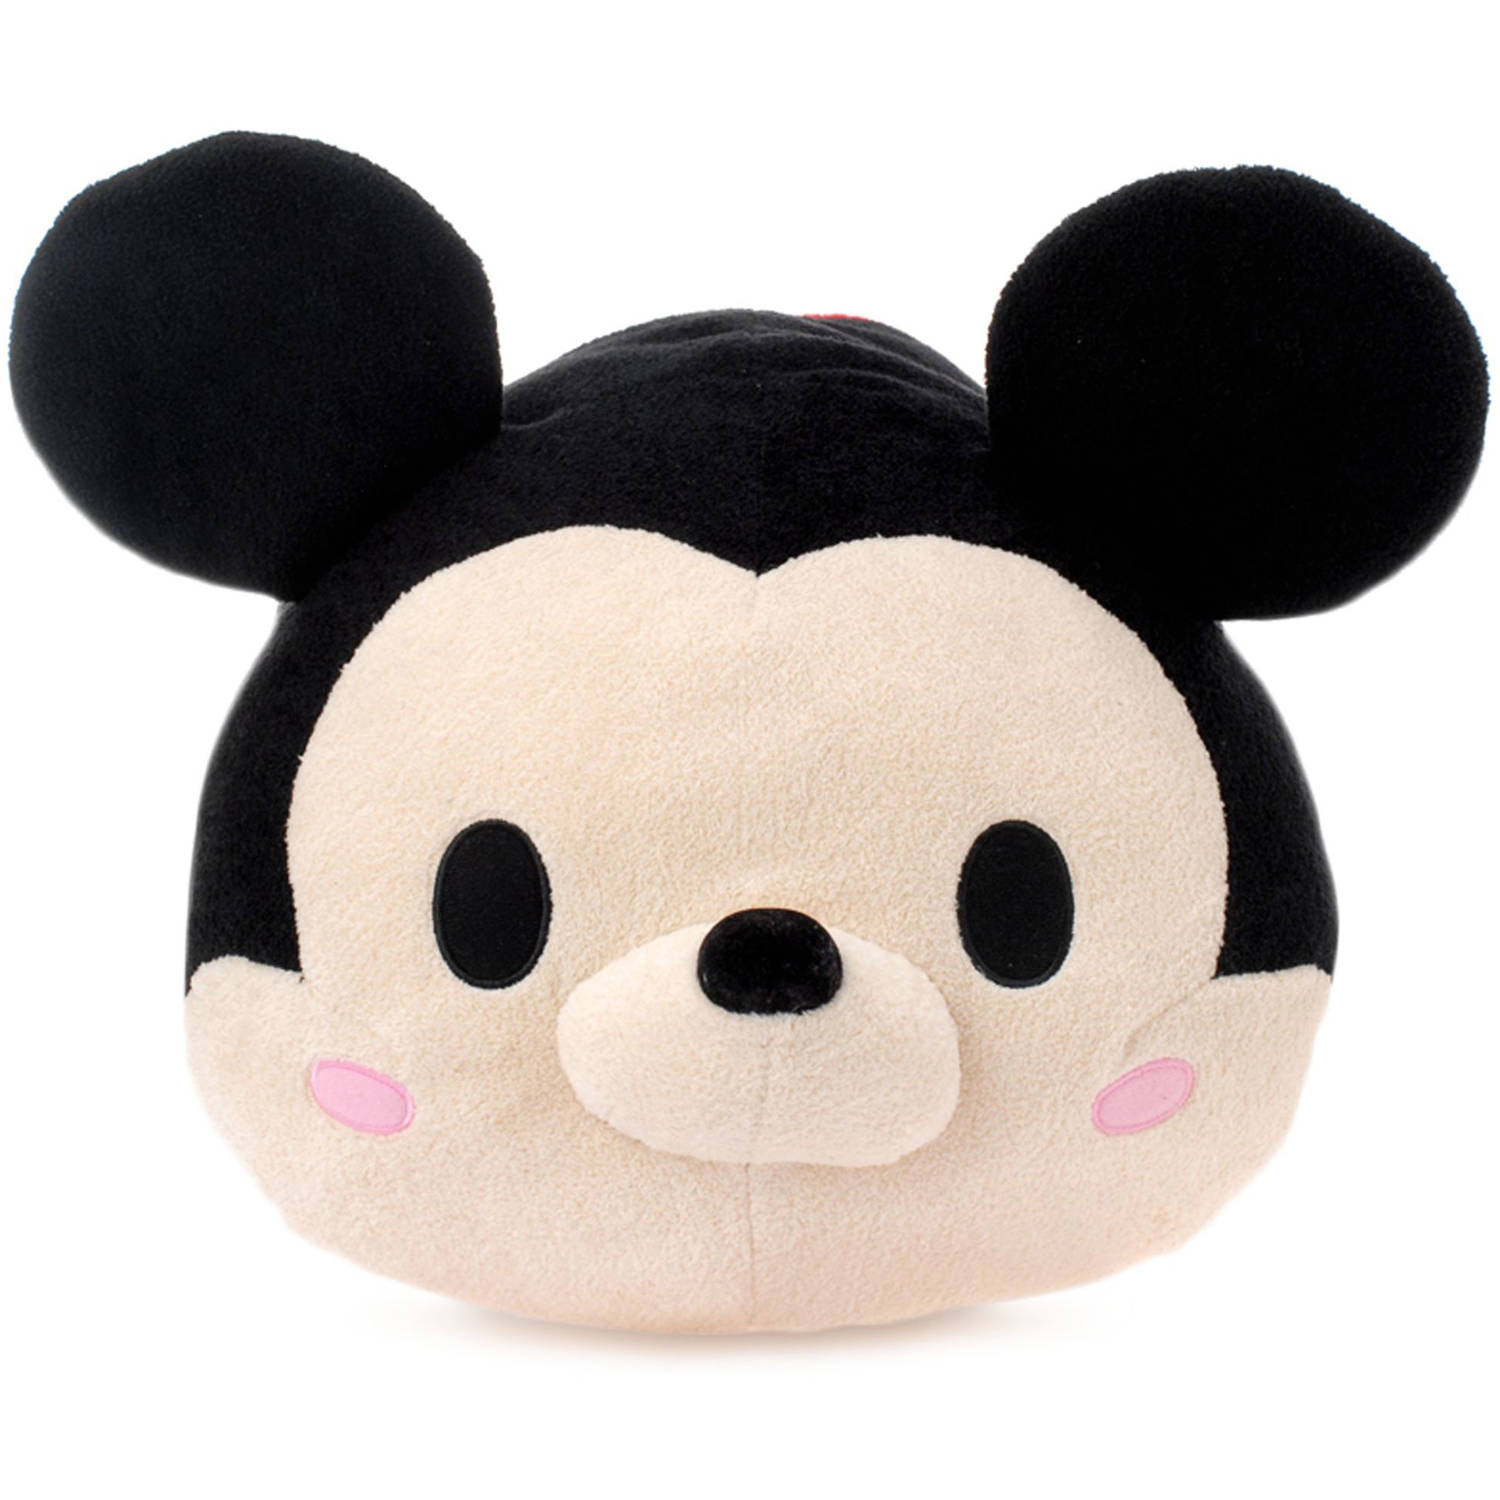 Disney Tsum Tsum Medium Mickey Mouse Plush